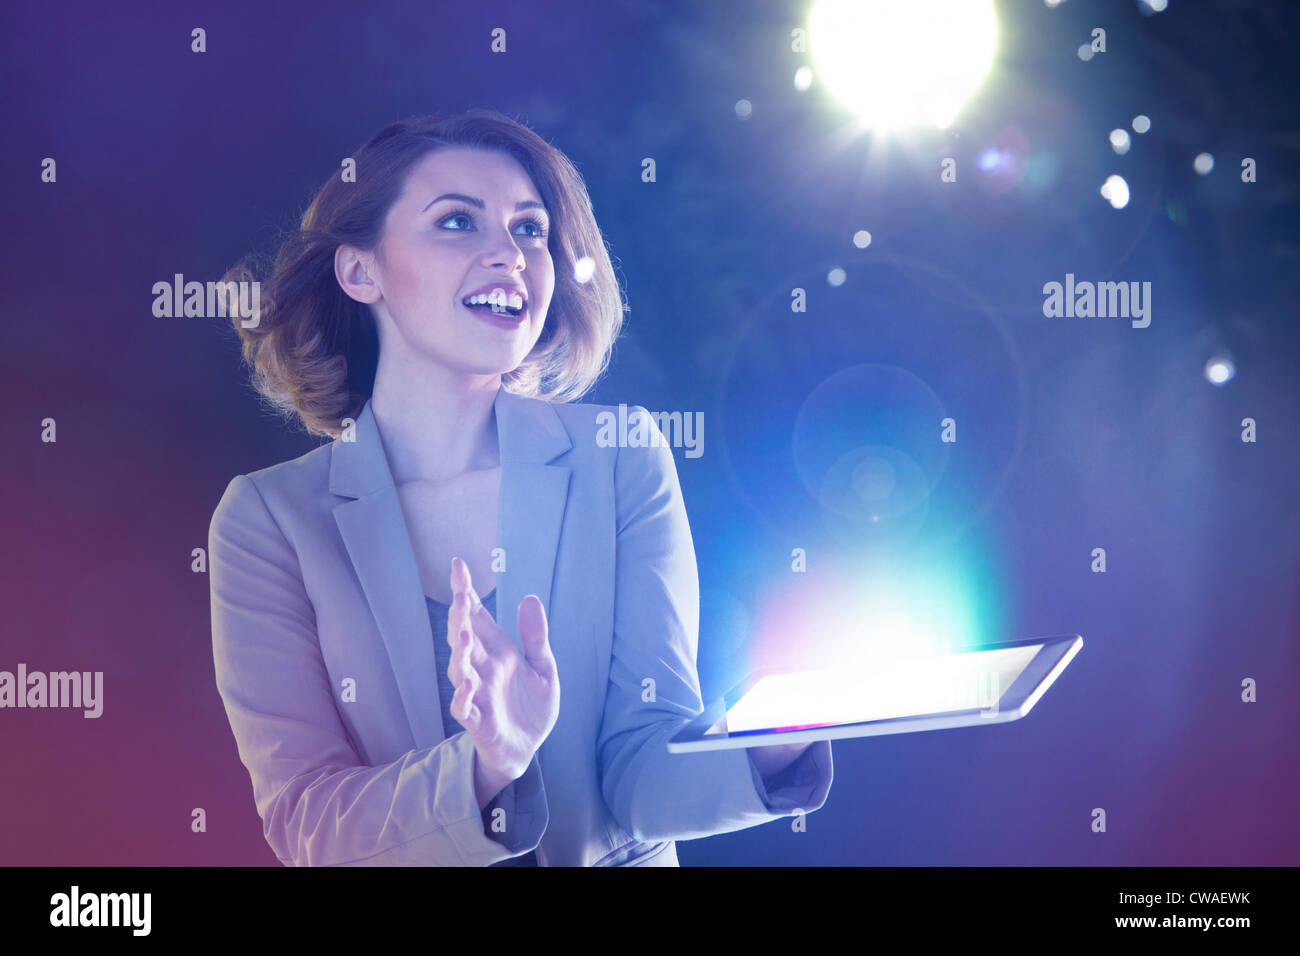 Young woman looking at lights coming from digital tablet - Stock Image